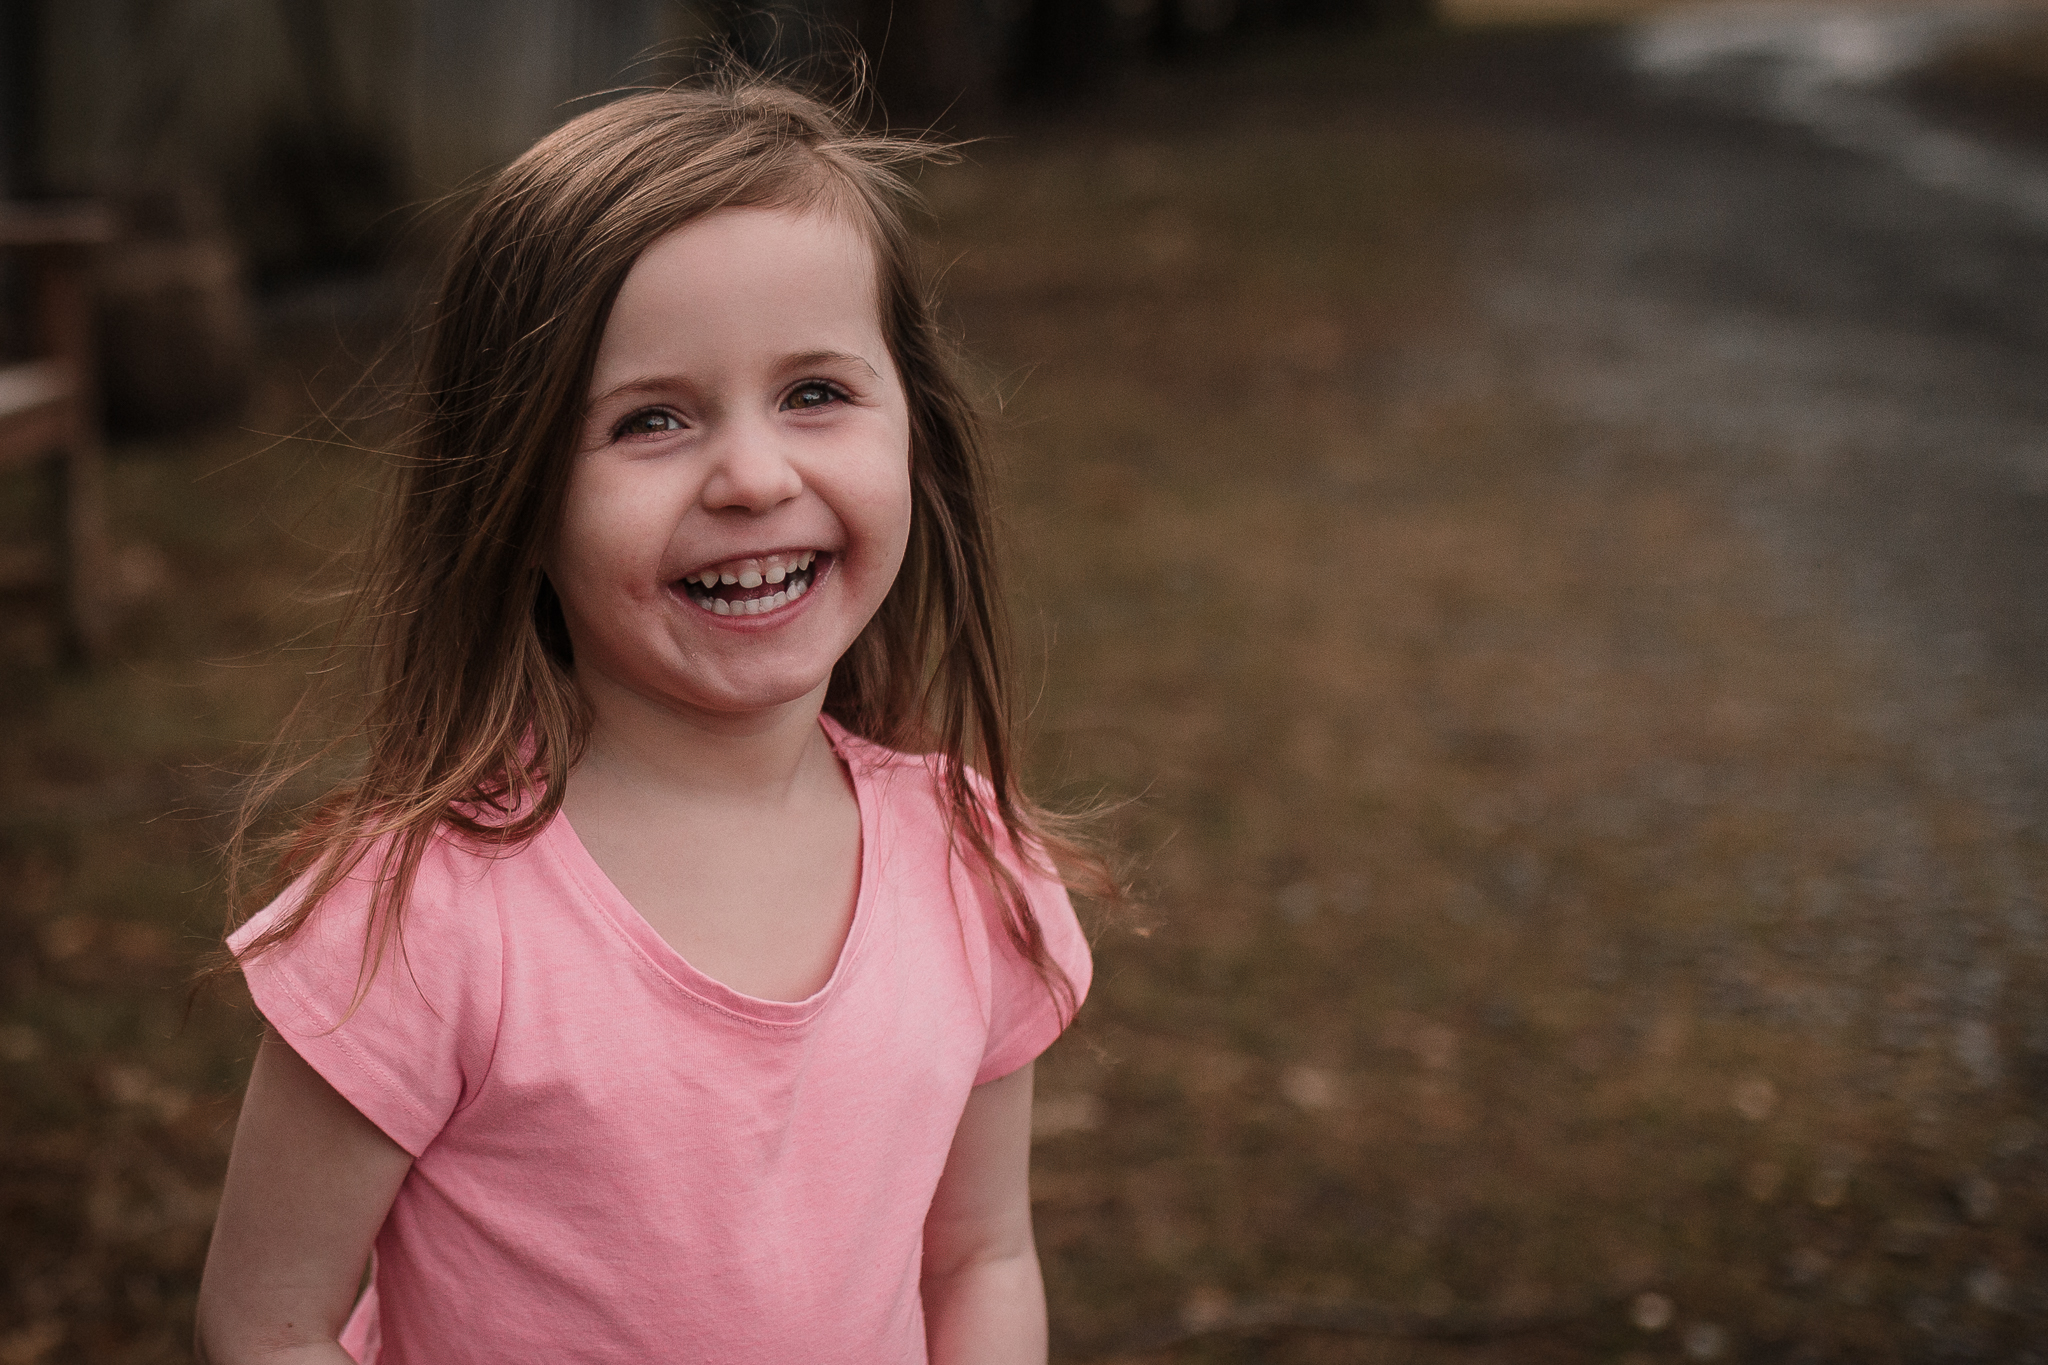 girl portrait laugh smile pink Claude Moore Park lifestyle documentary family Ashburn Loudoun northern Virginia  childhood Marti Austin Photography